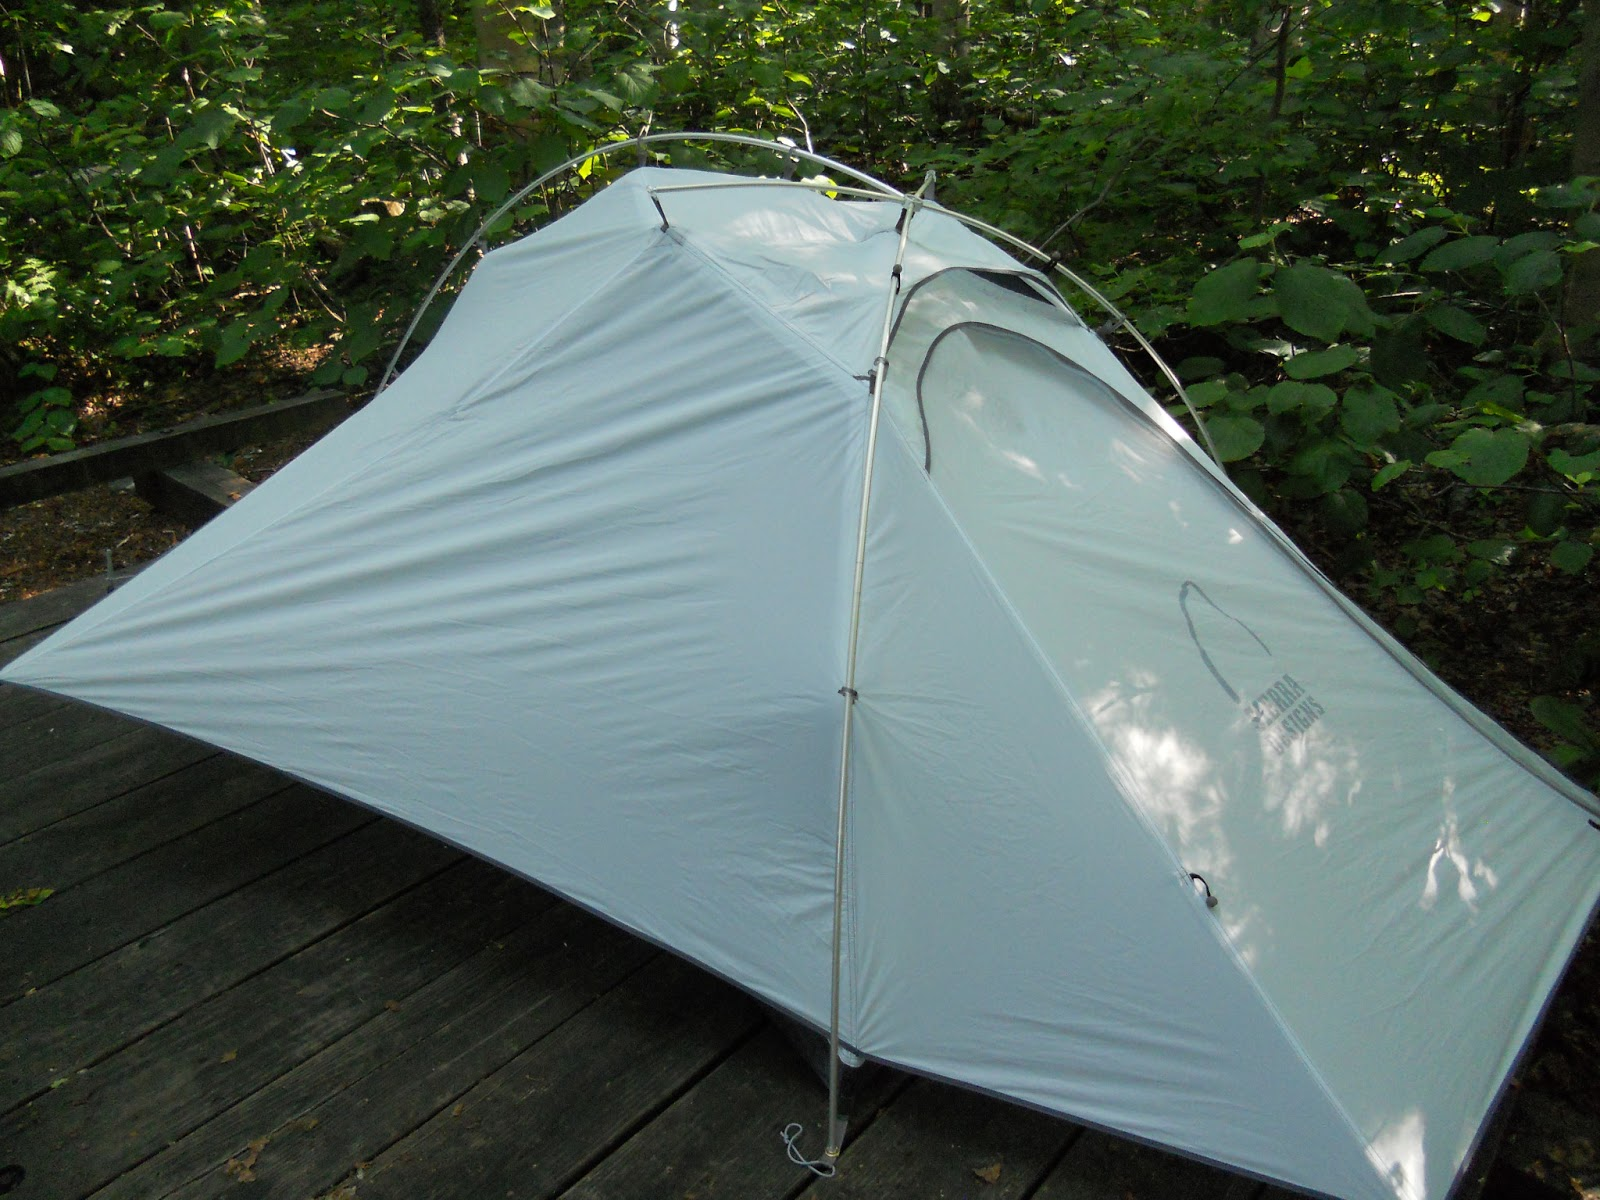 The innovative external pitch tent design of Sierra Designsu0027 Flash 2 Tent won accolades from reviewers at Backpacker Magazine like itu0027s older sister the ... & CCOutdoorStore.com Blog: External Pitch: Sierra Designs Gets it Right